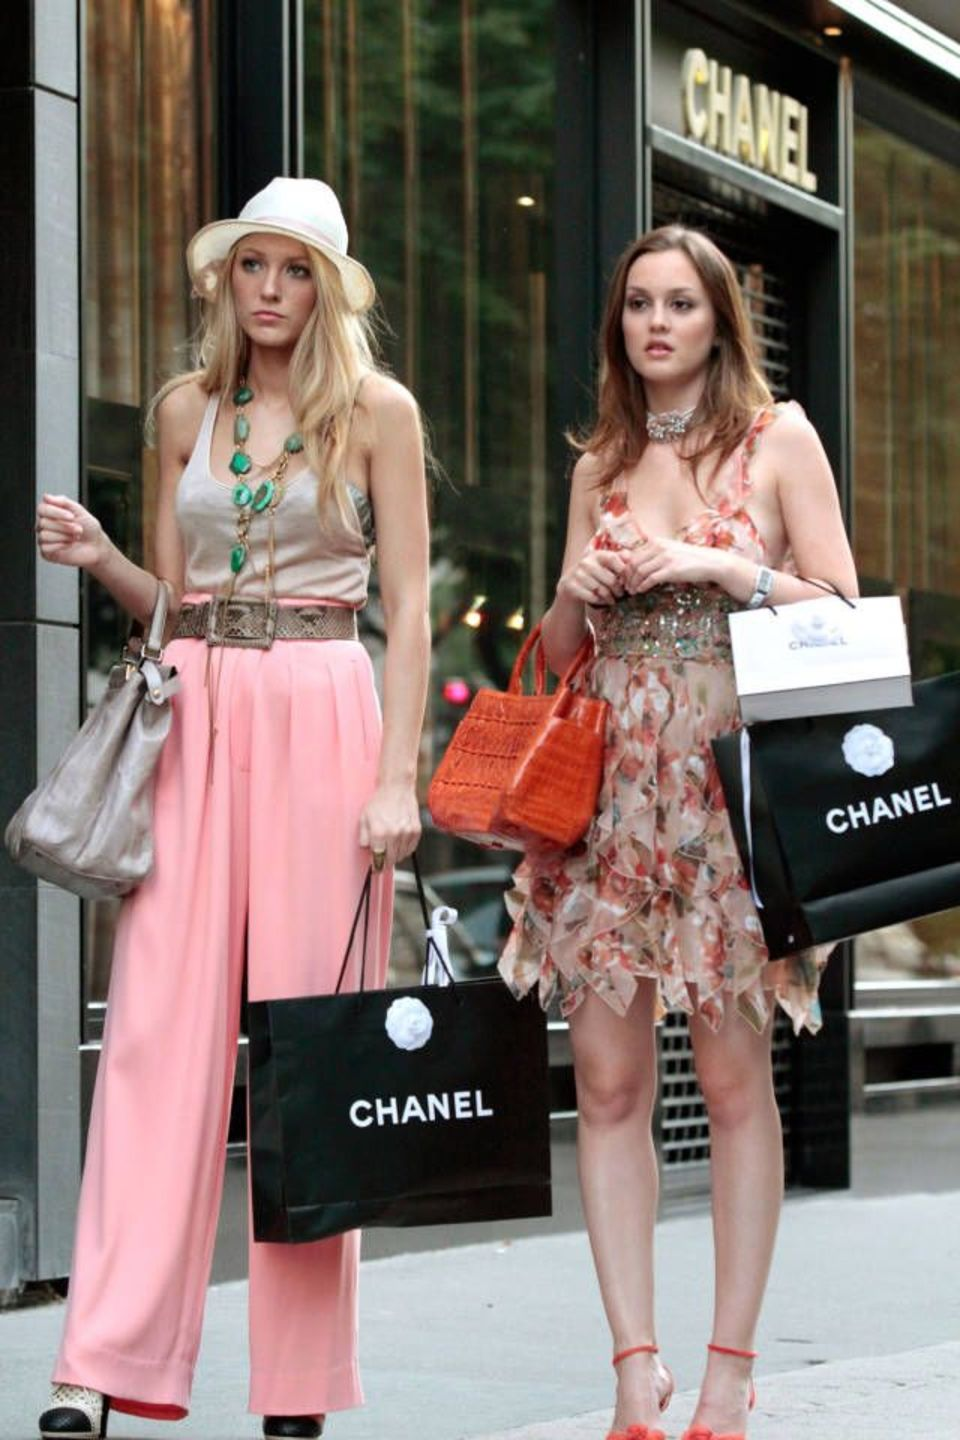 gossip girl shopping at chanel